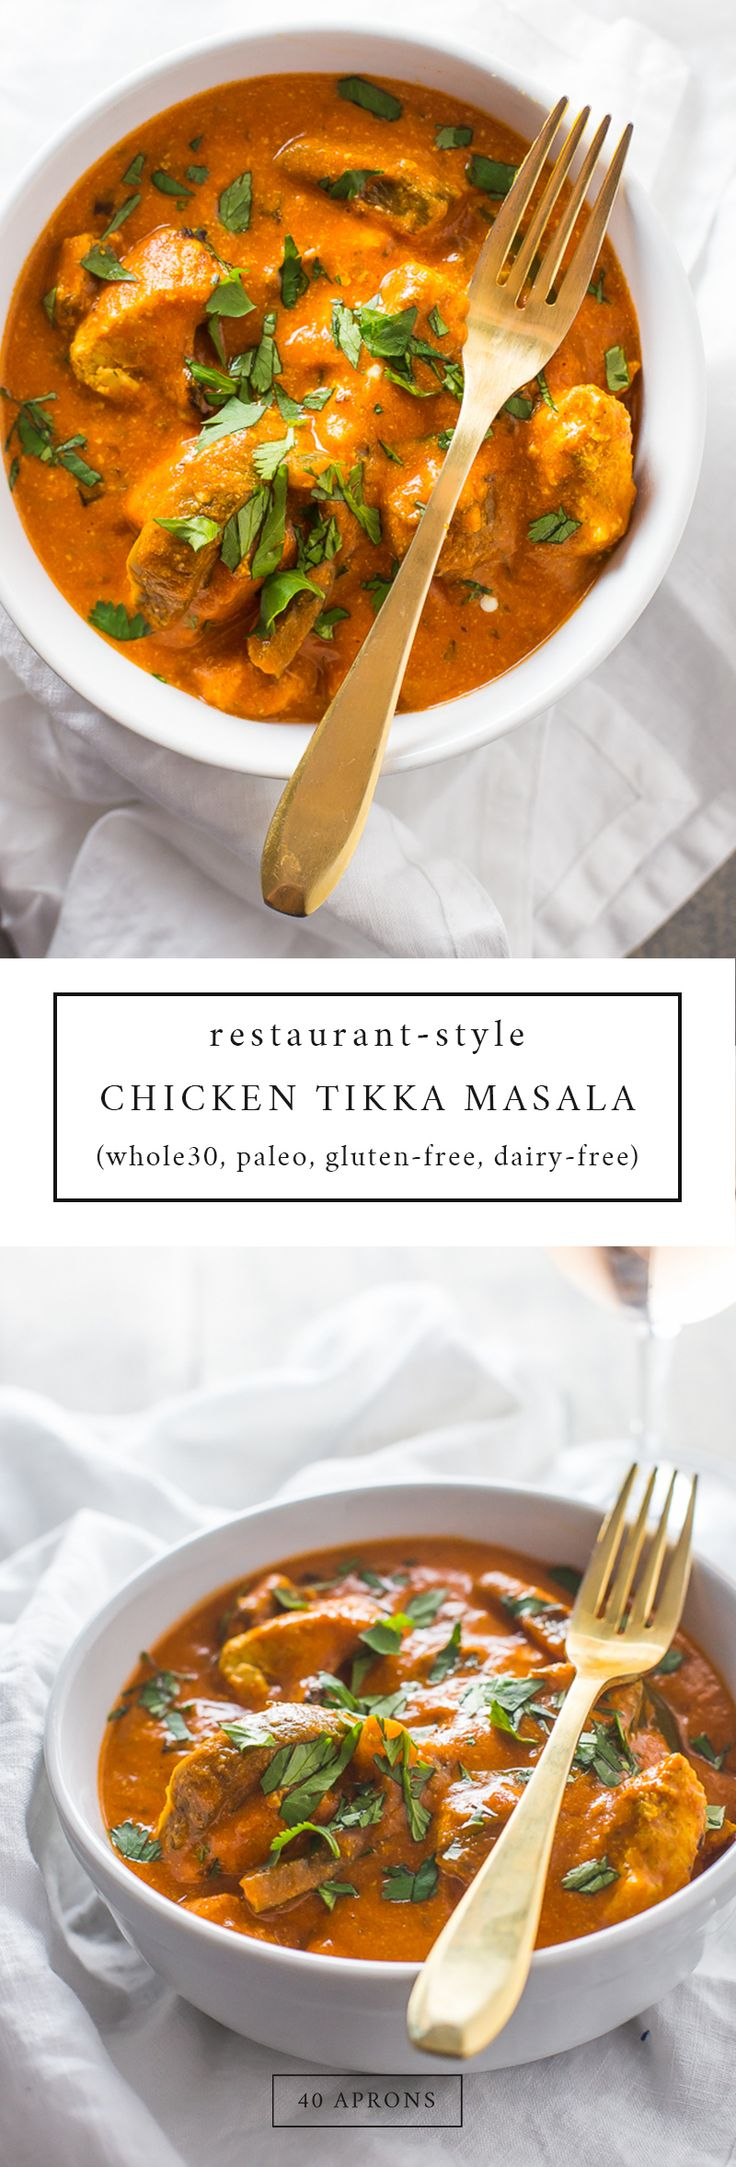 This restaurant-style chicken tikka masala will fool even the most hardcore of takeout enthusiasts. This paleo chicken tikka masala recipe is rich and creamy with tender bites of chicken, and this dish also works as a Whole30 chicken tikka masala recipe that absolutely everyone would love. Healthy and a wonderful paleo dinner or Whole30 dinner.